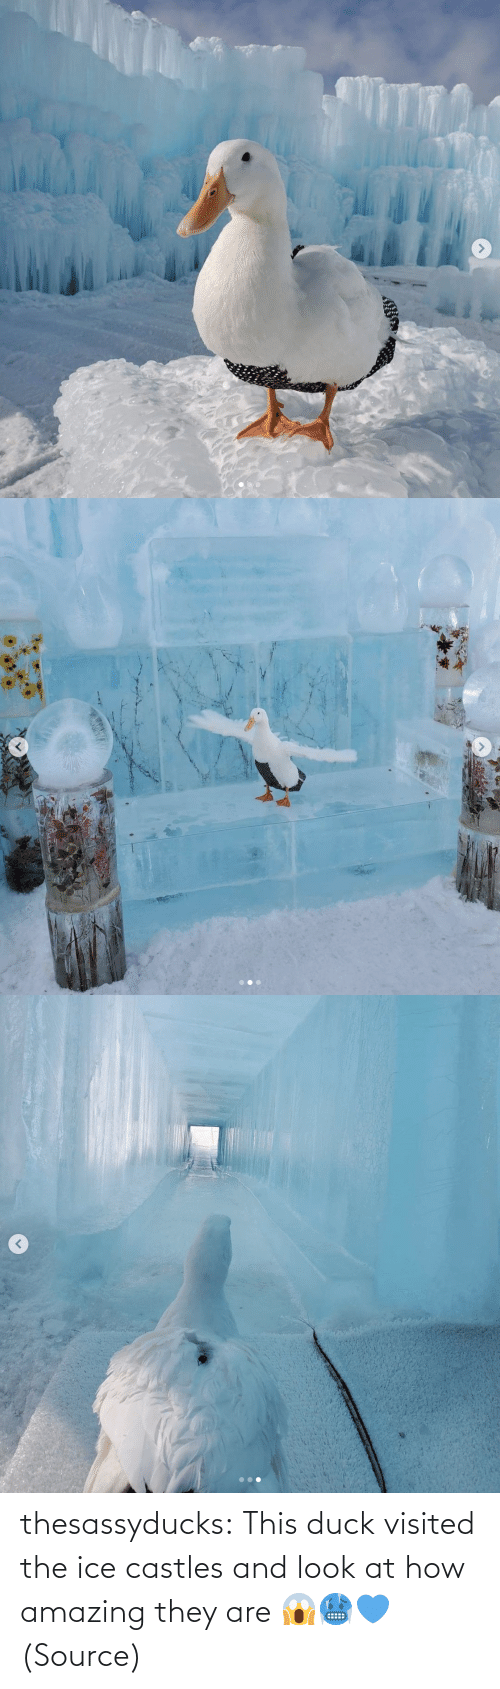 Instagram, Target, and Tumblr: thesassyducks: This duck visited the ice castles and look at how amazing they are 😱🥶💙 (Source)